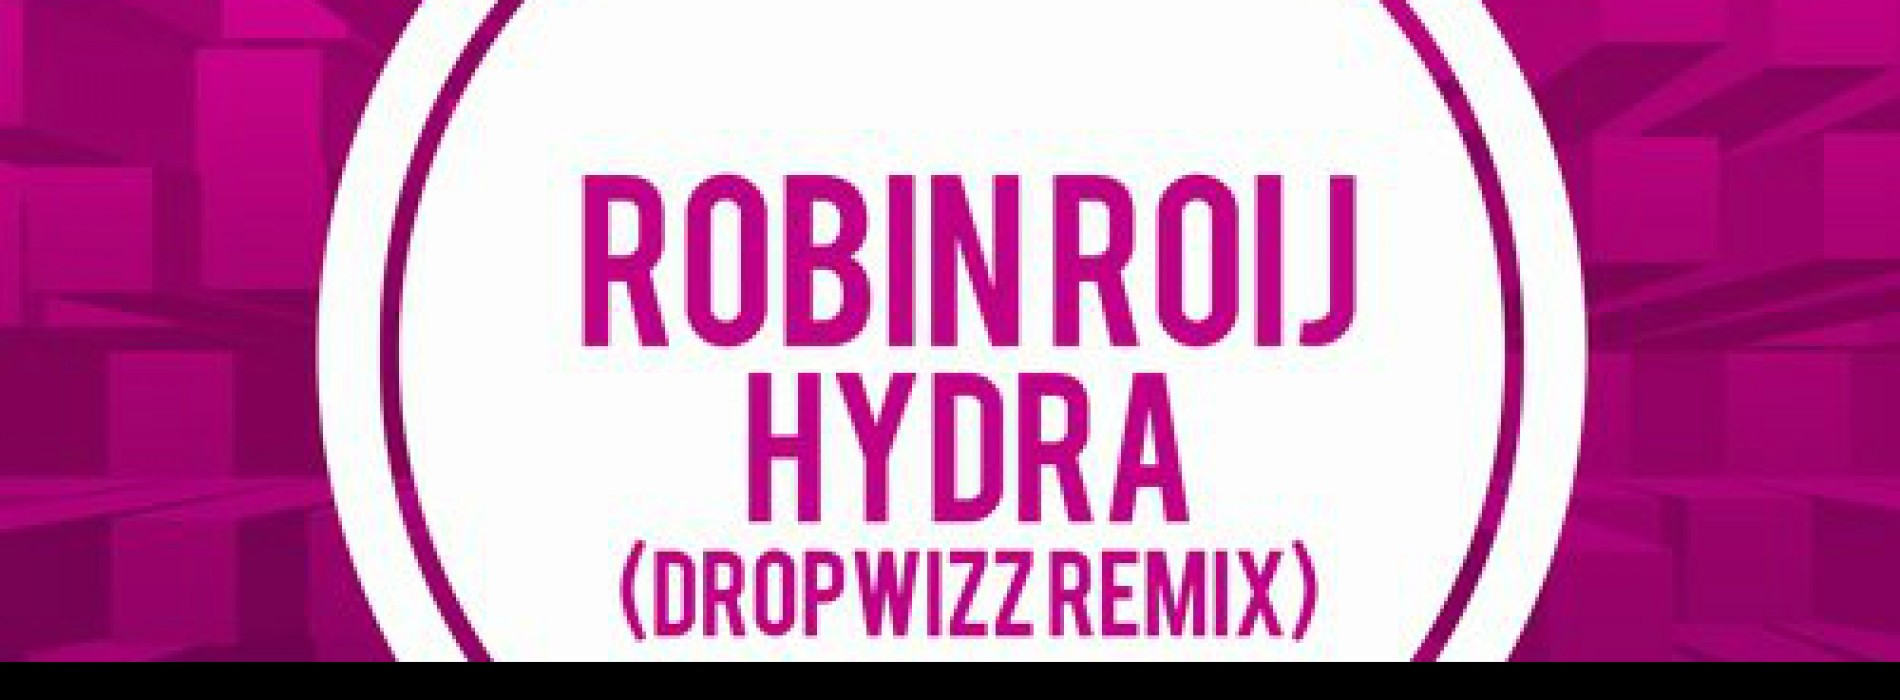 Dropwizz: The First Lankan On The Beatport Glitch Hop Charts!